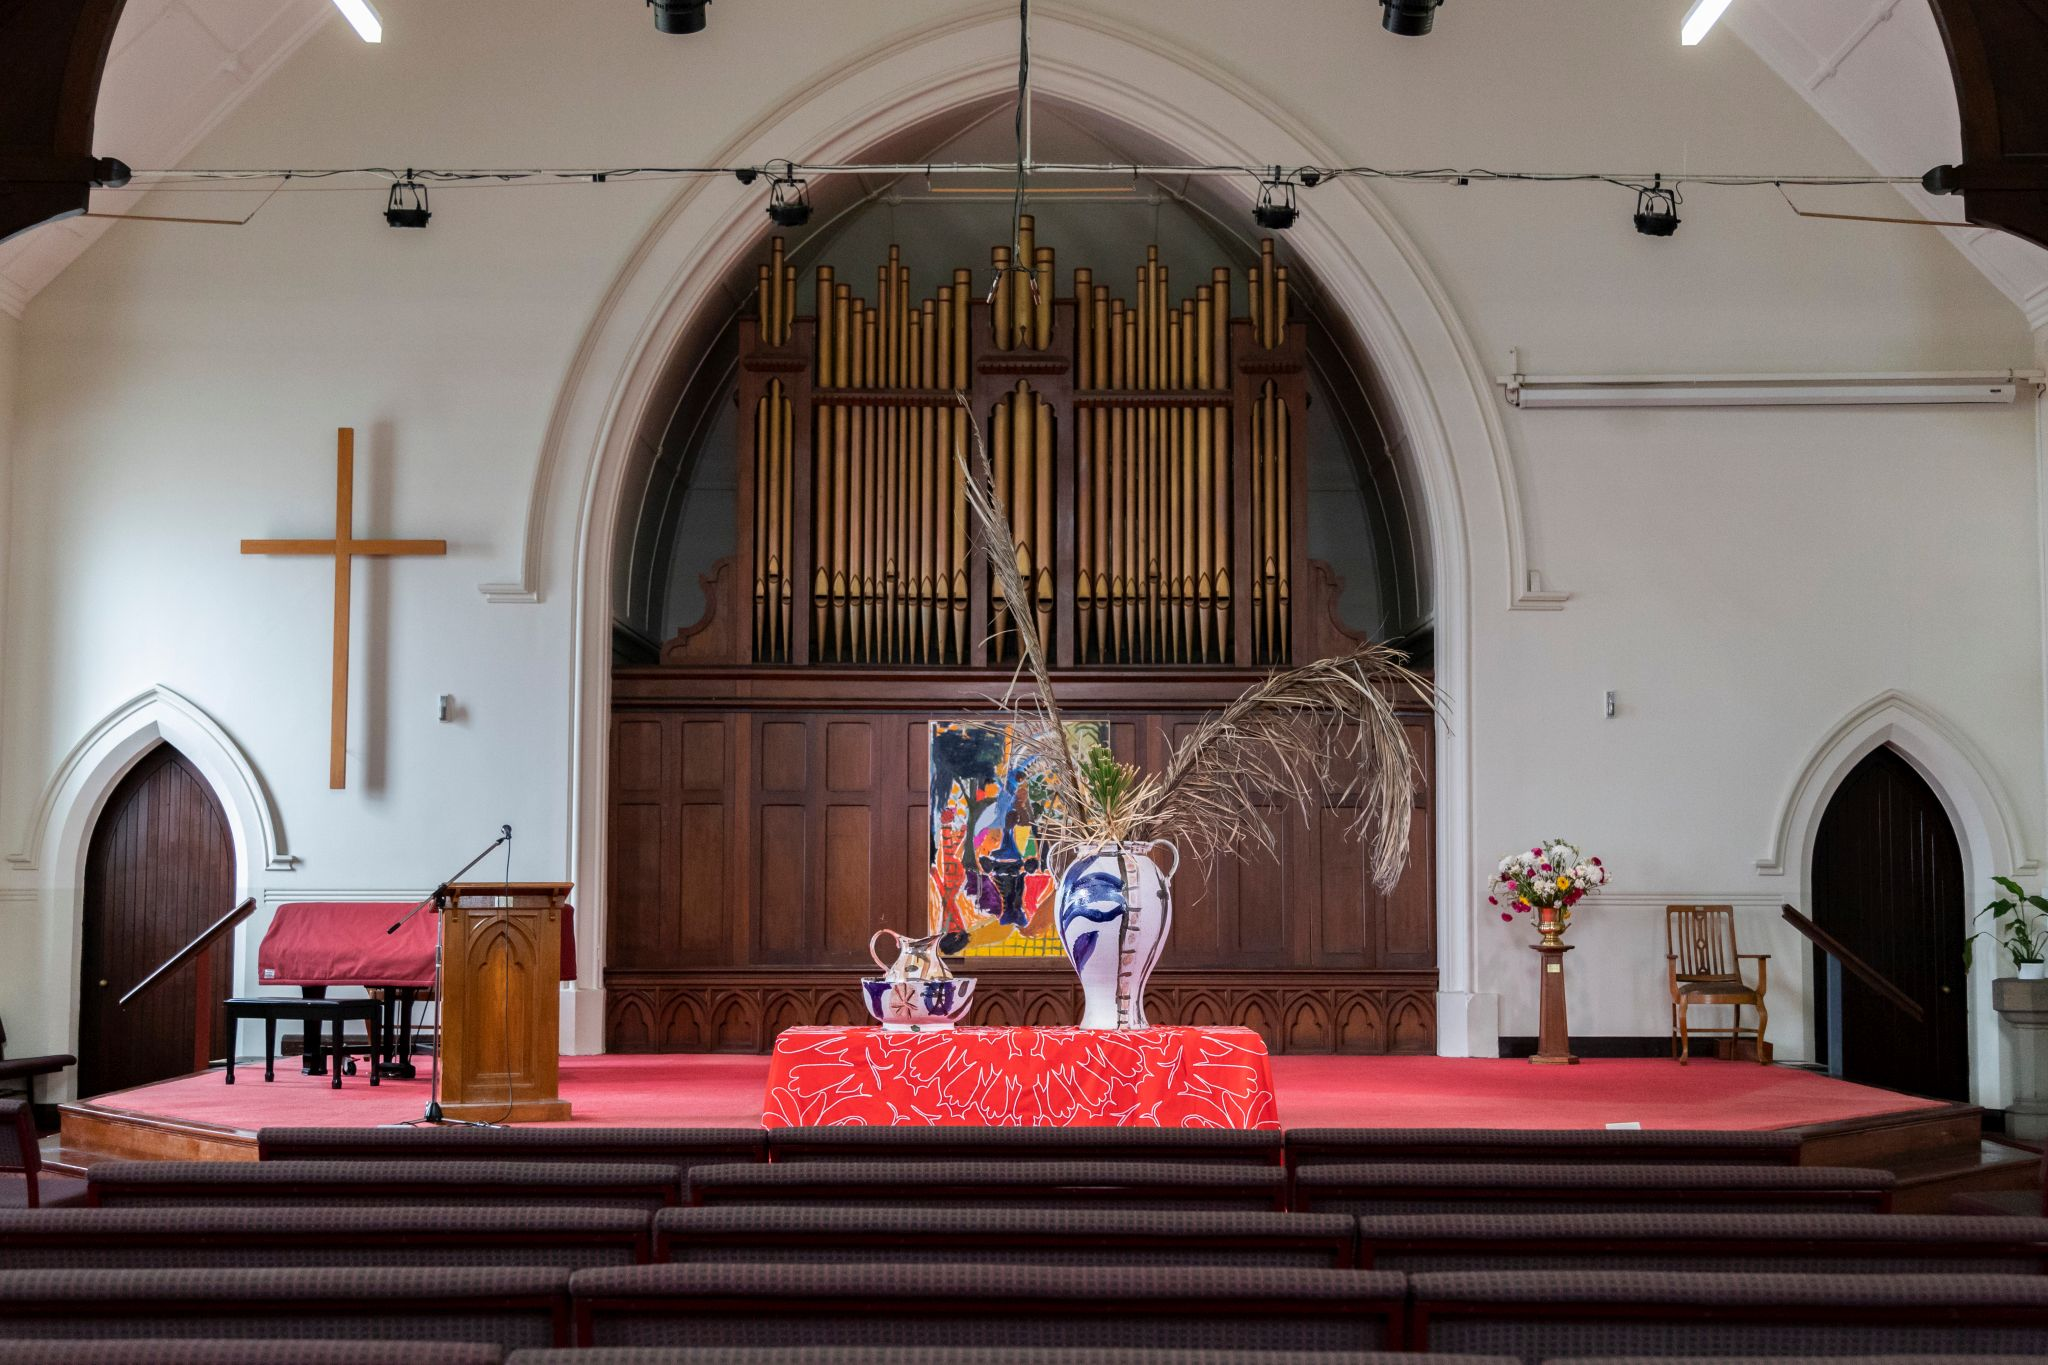 Beauty, A Pursuit by James Drinkwater at Altar/d , Adamstown Uniting Church 2018